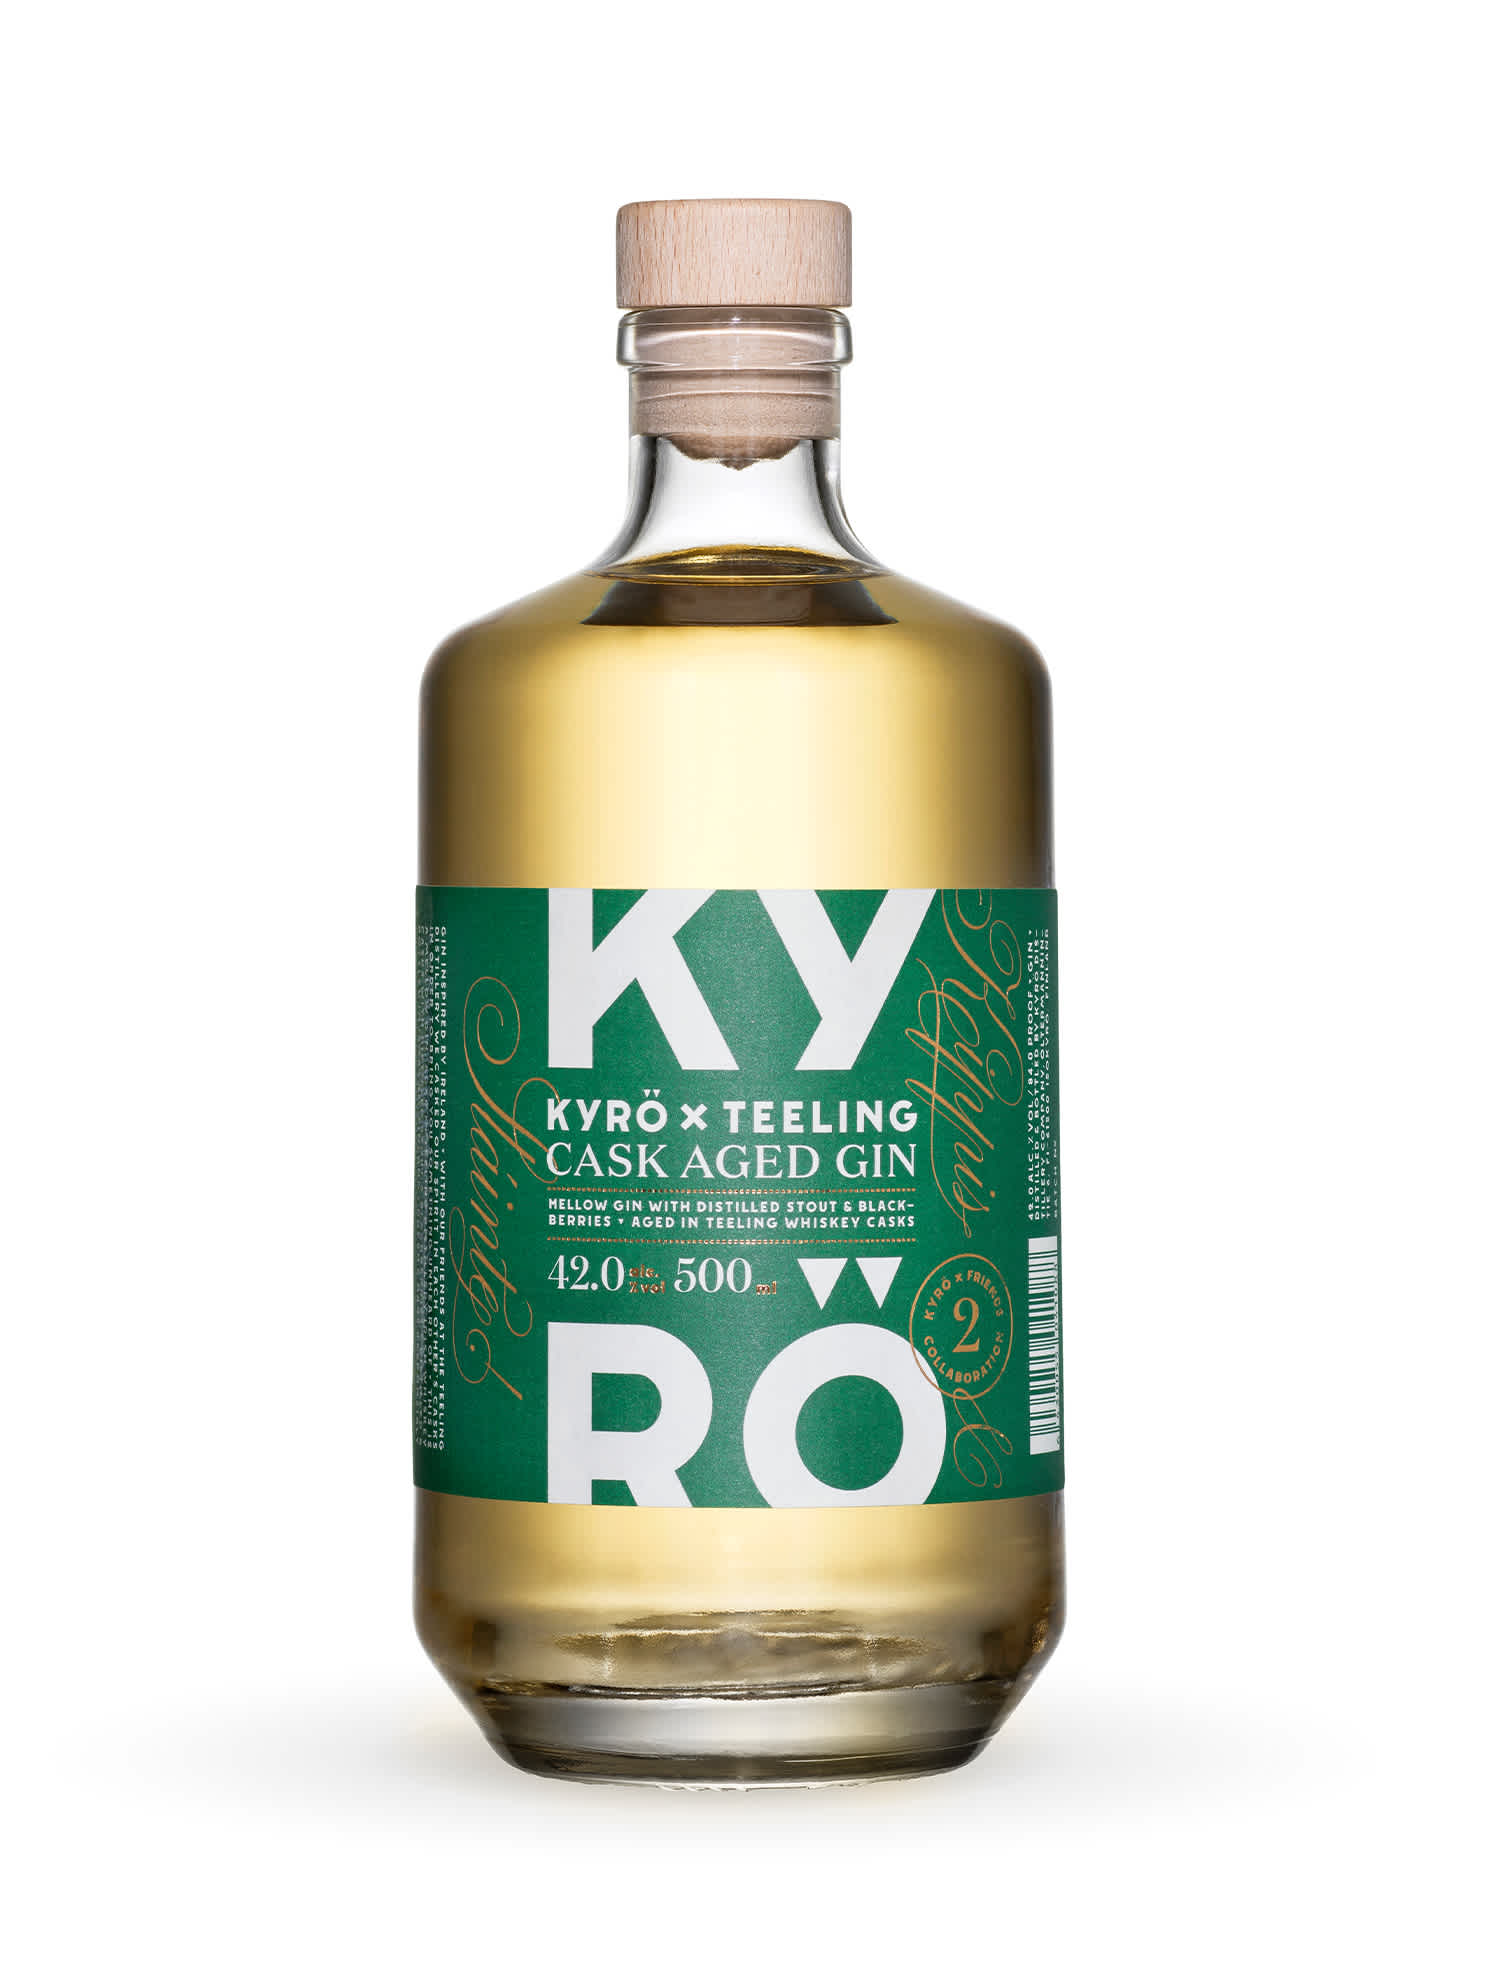 Product photo: clear, 500 ml glass bottle with green Kyrö x Teeling label, filled with honey-colored gin. Product by the Kyrö Distillery Company in Isokyrö, Finland.